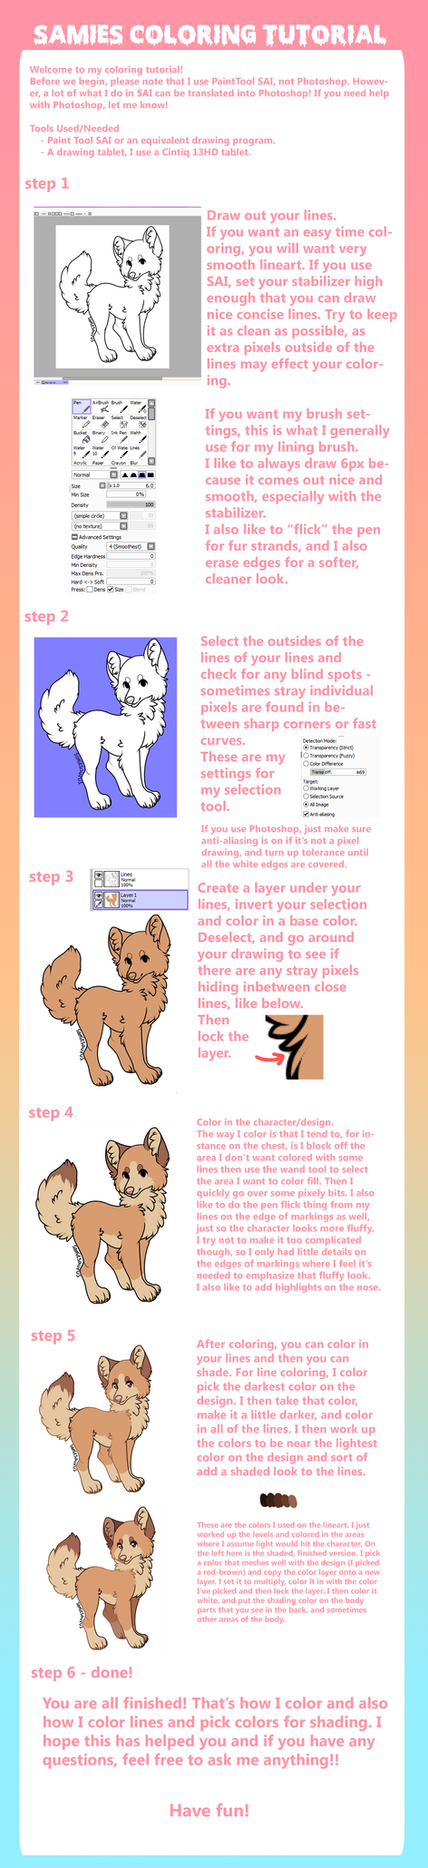 Samies Coloring Tutorial by voxame